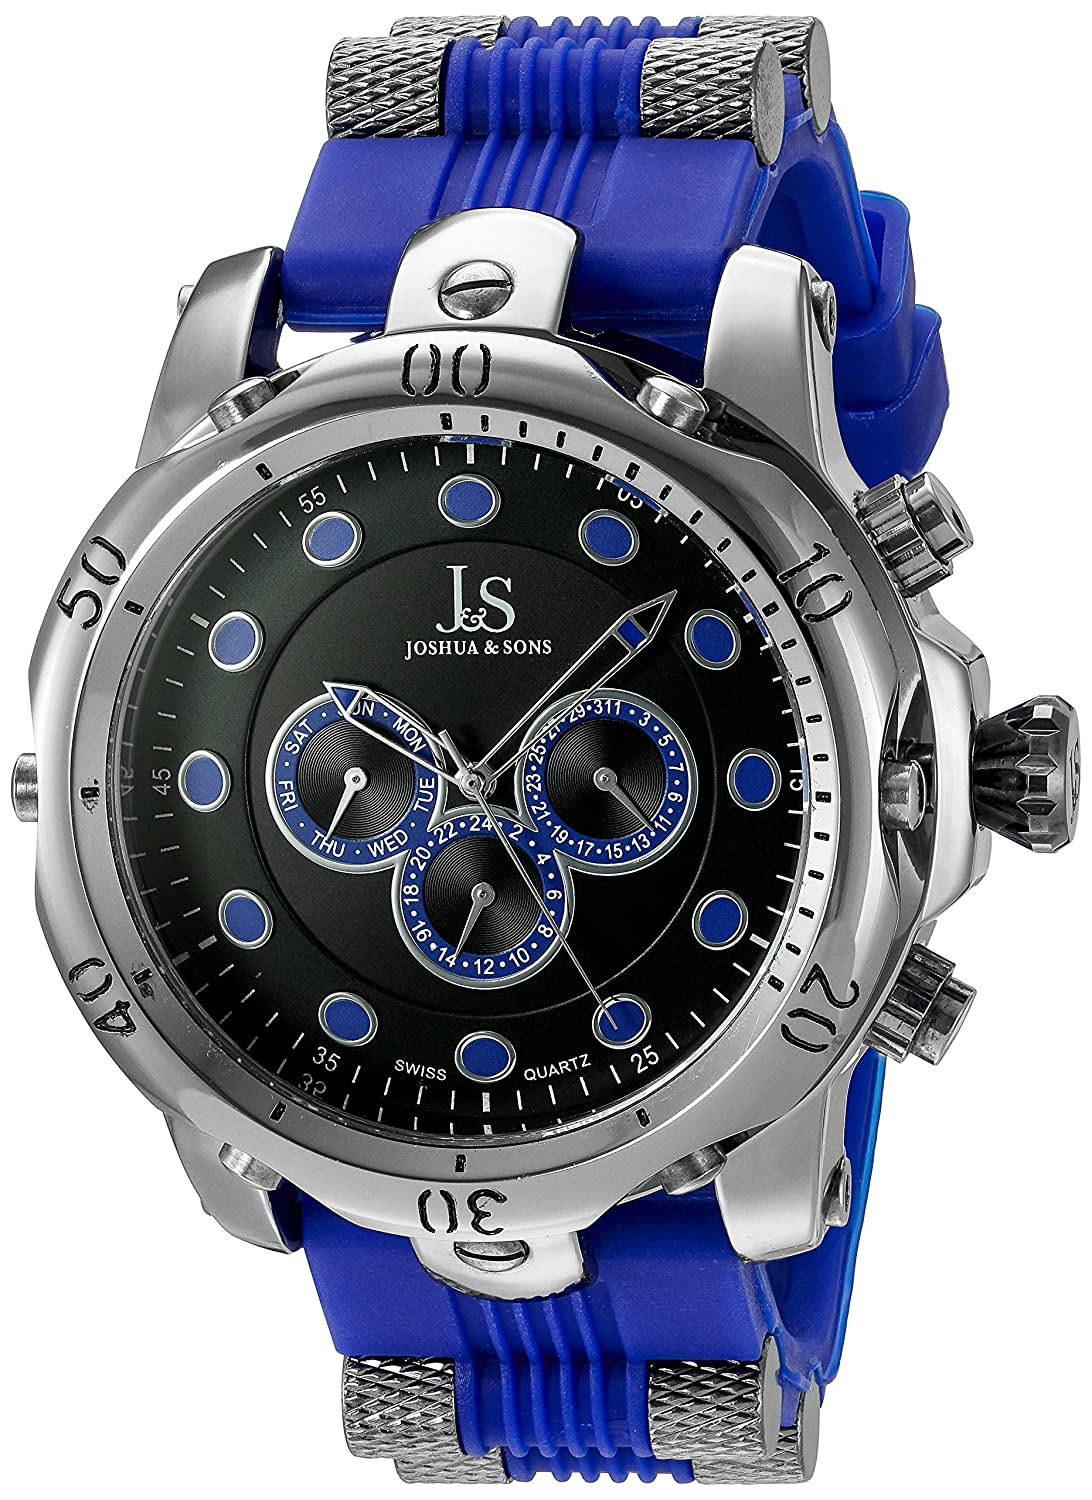 Joshua & Sons Herren Armbanduhr Analog Display Swiss Quarz blau